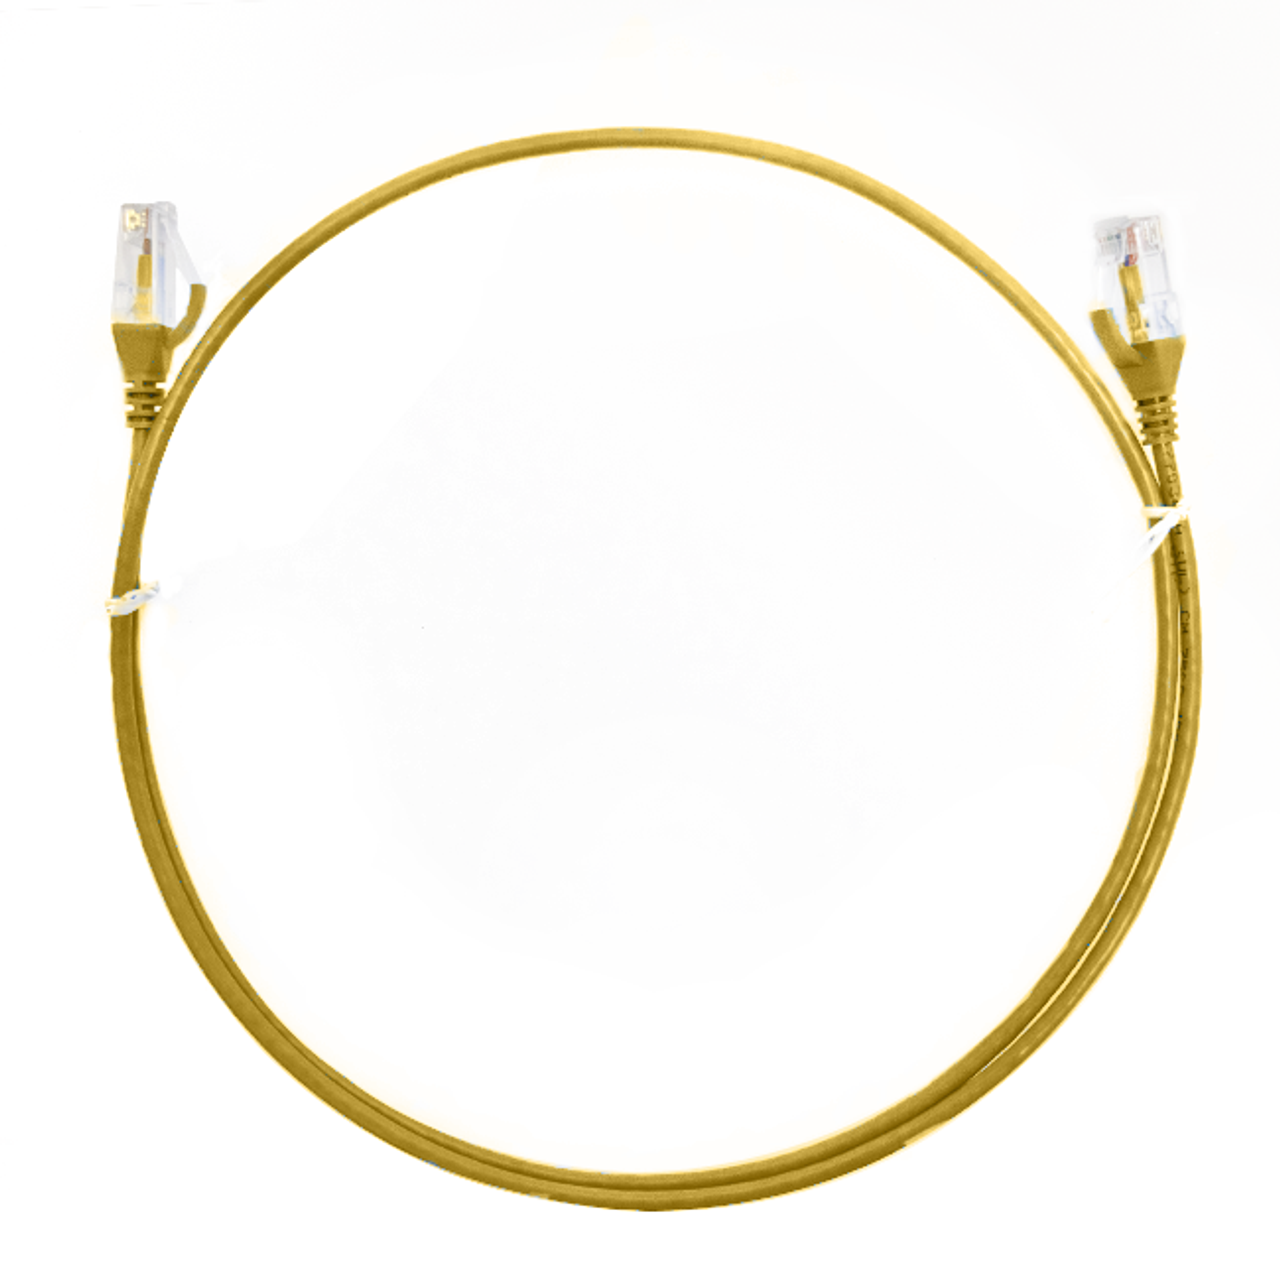 Image for 3m Cat 6 Ultra Thin LSZH Ethernet Network Cables: Yellow CX Computer Superstore